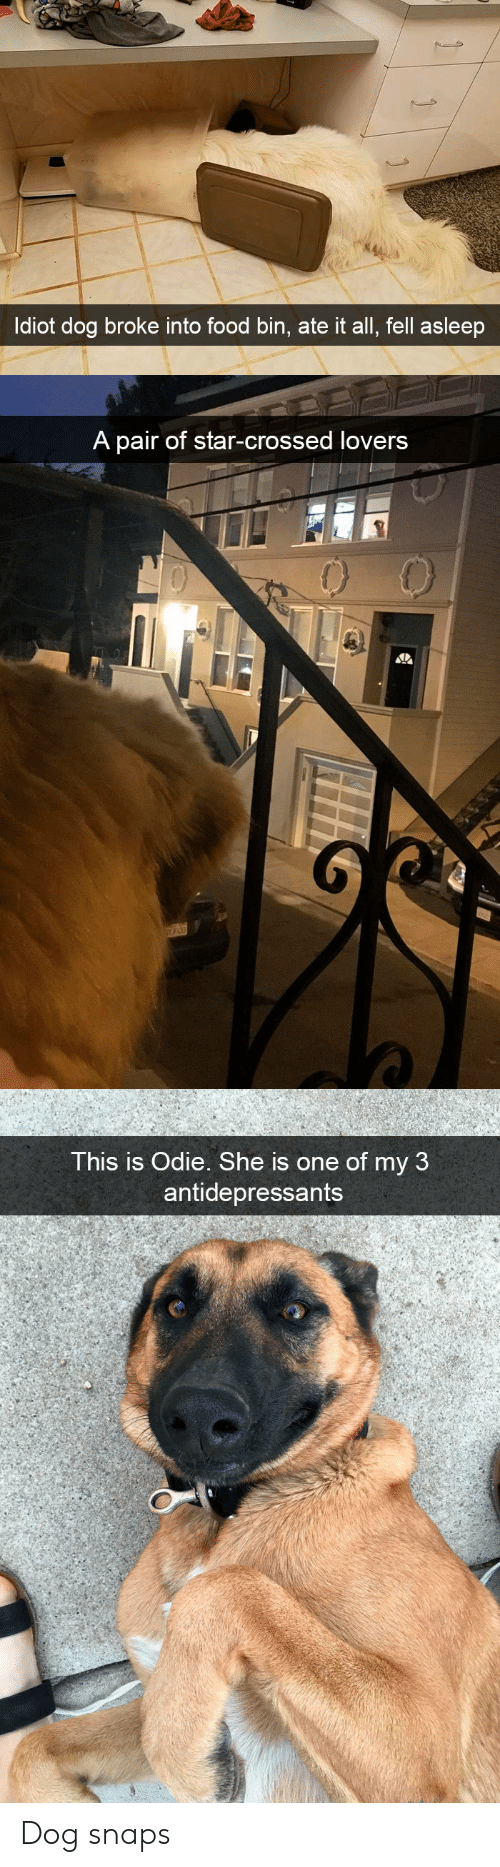 Food, Star, and Dog: ldiot dog broke into food bin, ate it all, fell asleep   A pair of star-crossed lovers   This is Odie. She is one of my 3  antidepressants Dog snaps